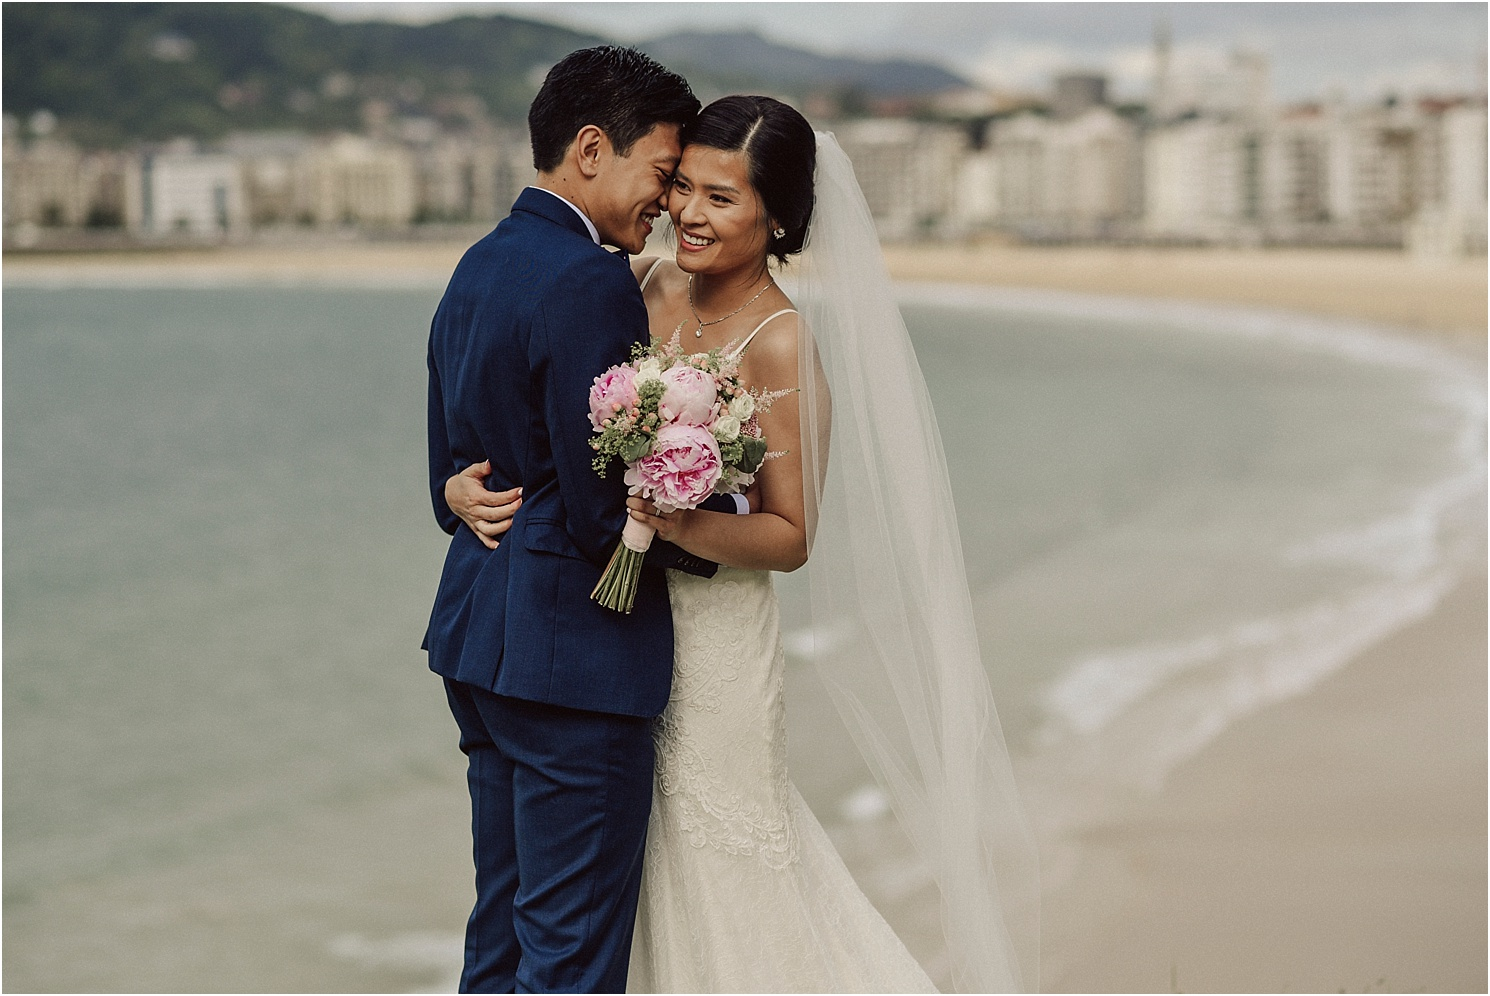 Destination wedding photographer San Sebastian - Destiantion wedding Donostia San Sebastián - Best photographer Basque country_-48